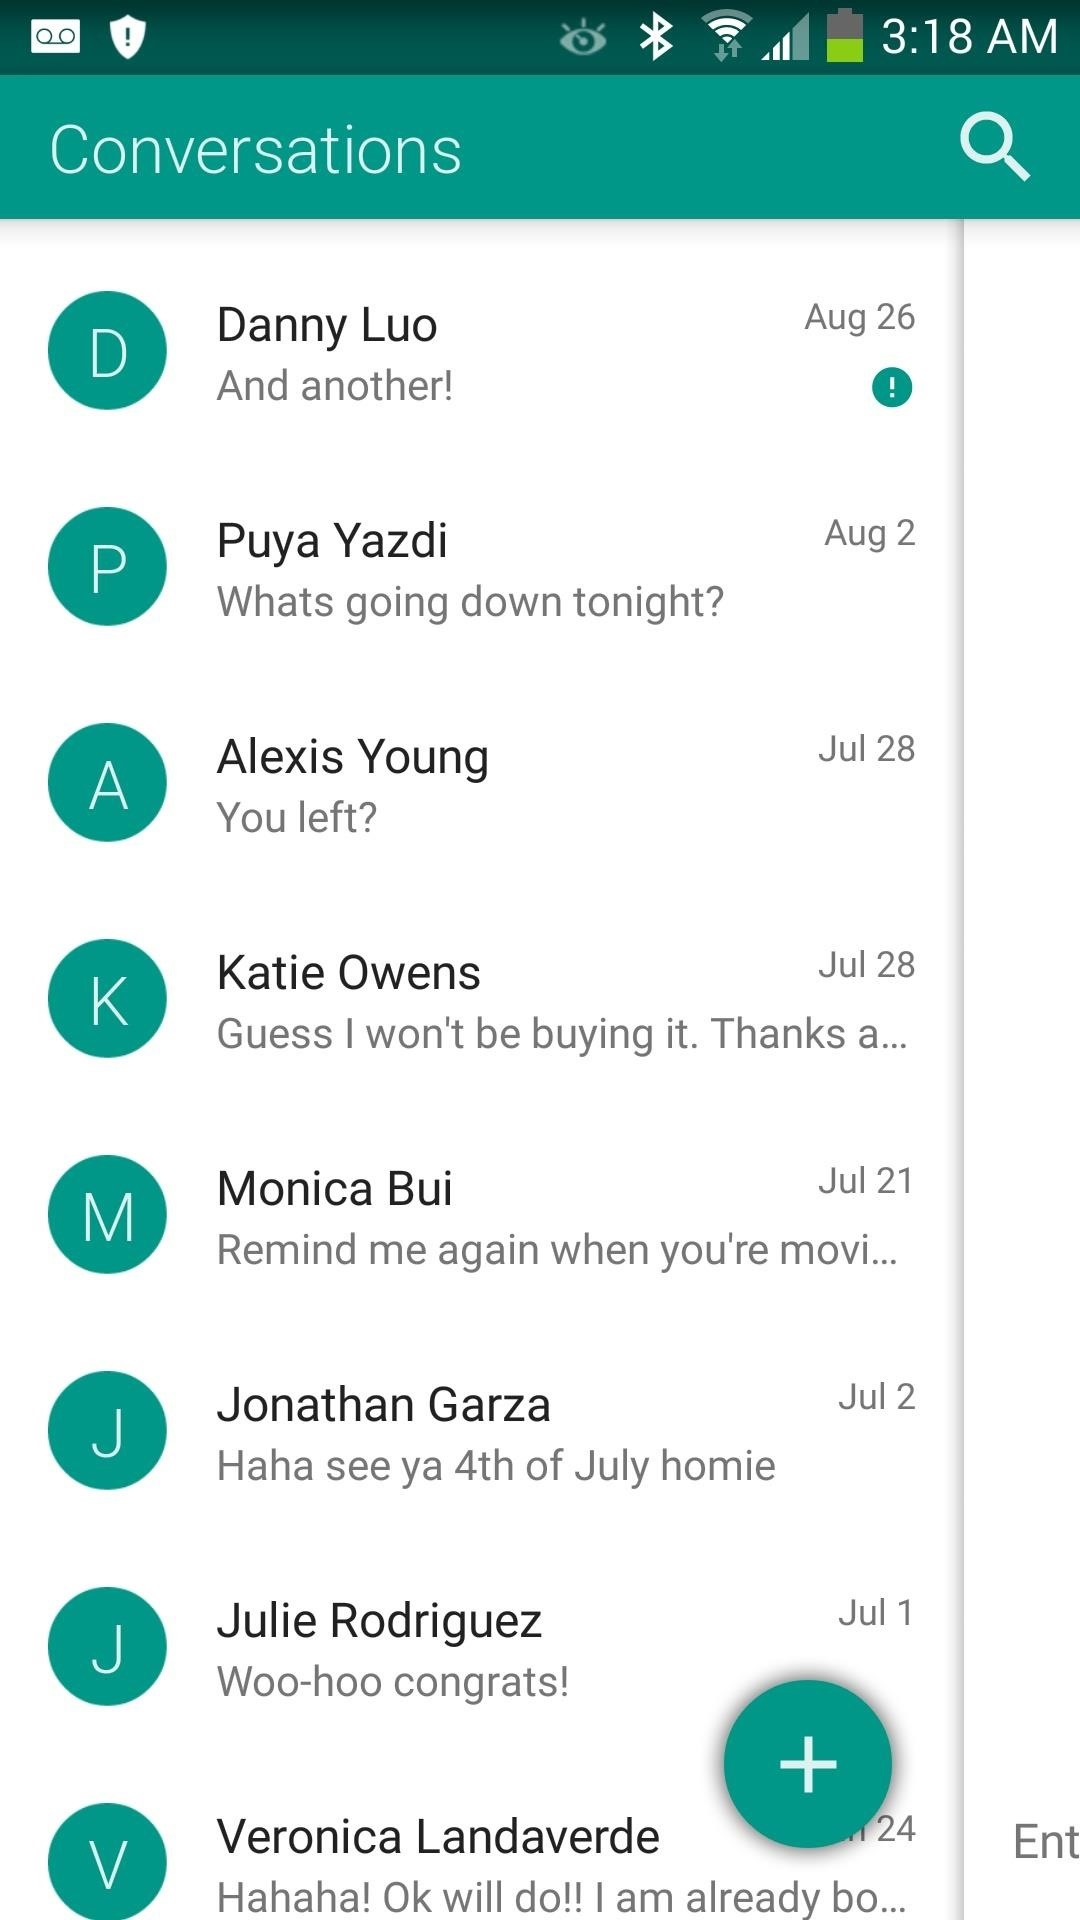 Get a Taste of Android L's Material Design with QKSMS Messaging